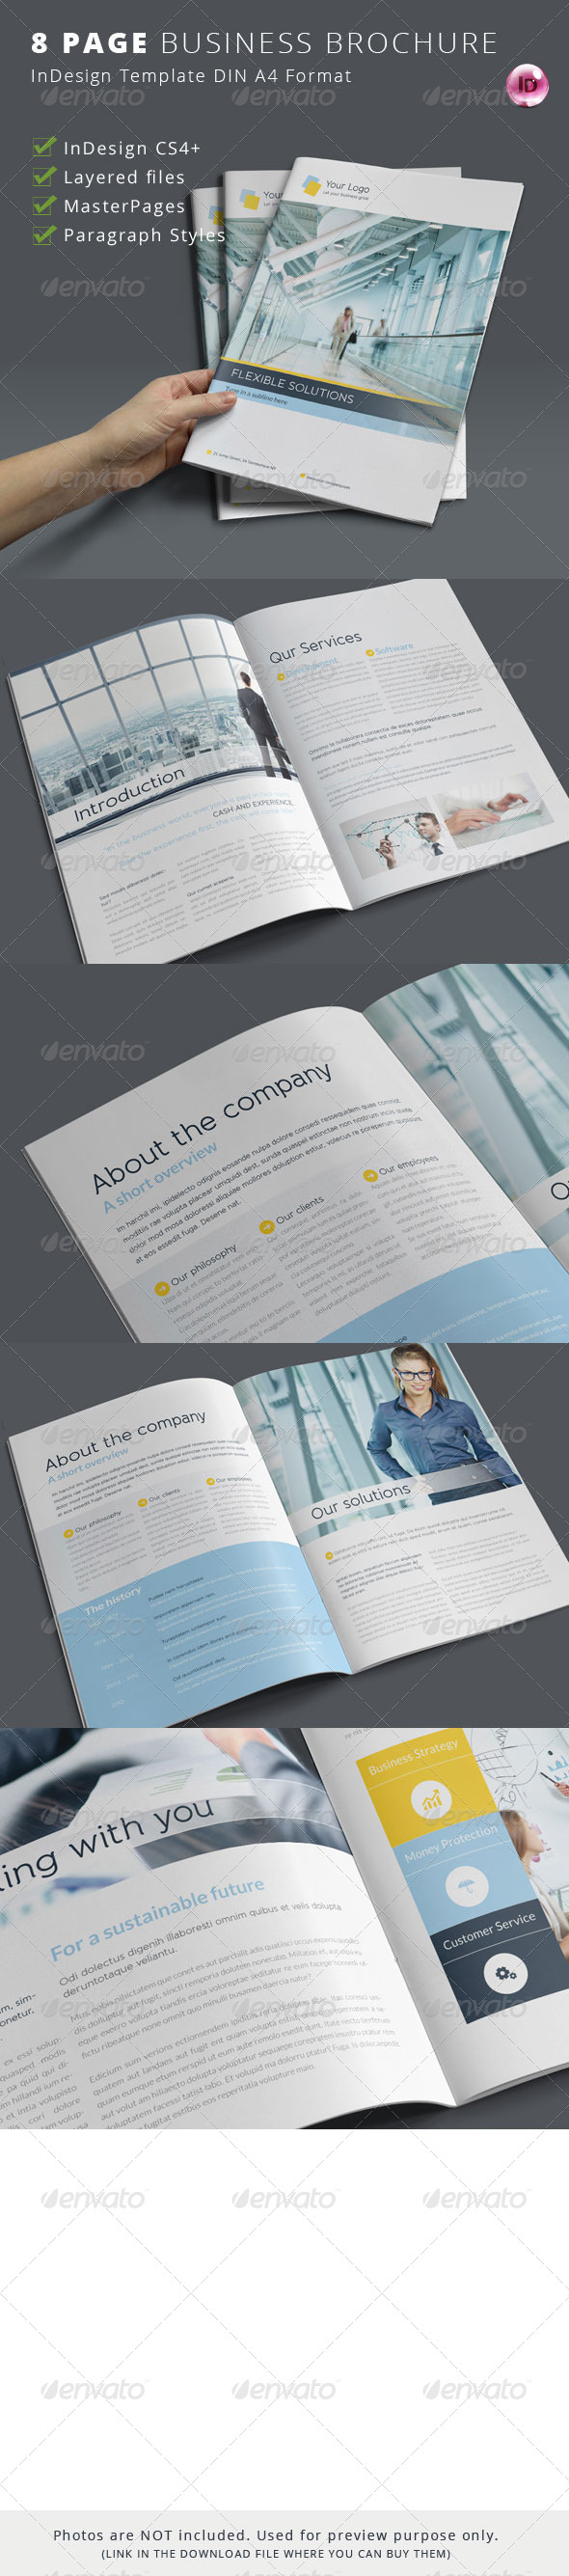 GraphicRiver 8 Page Business Brochure 6788224